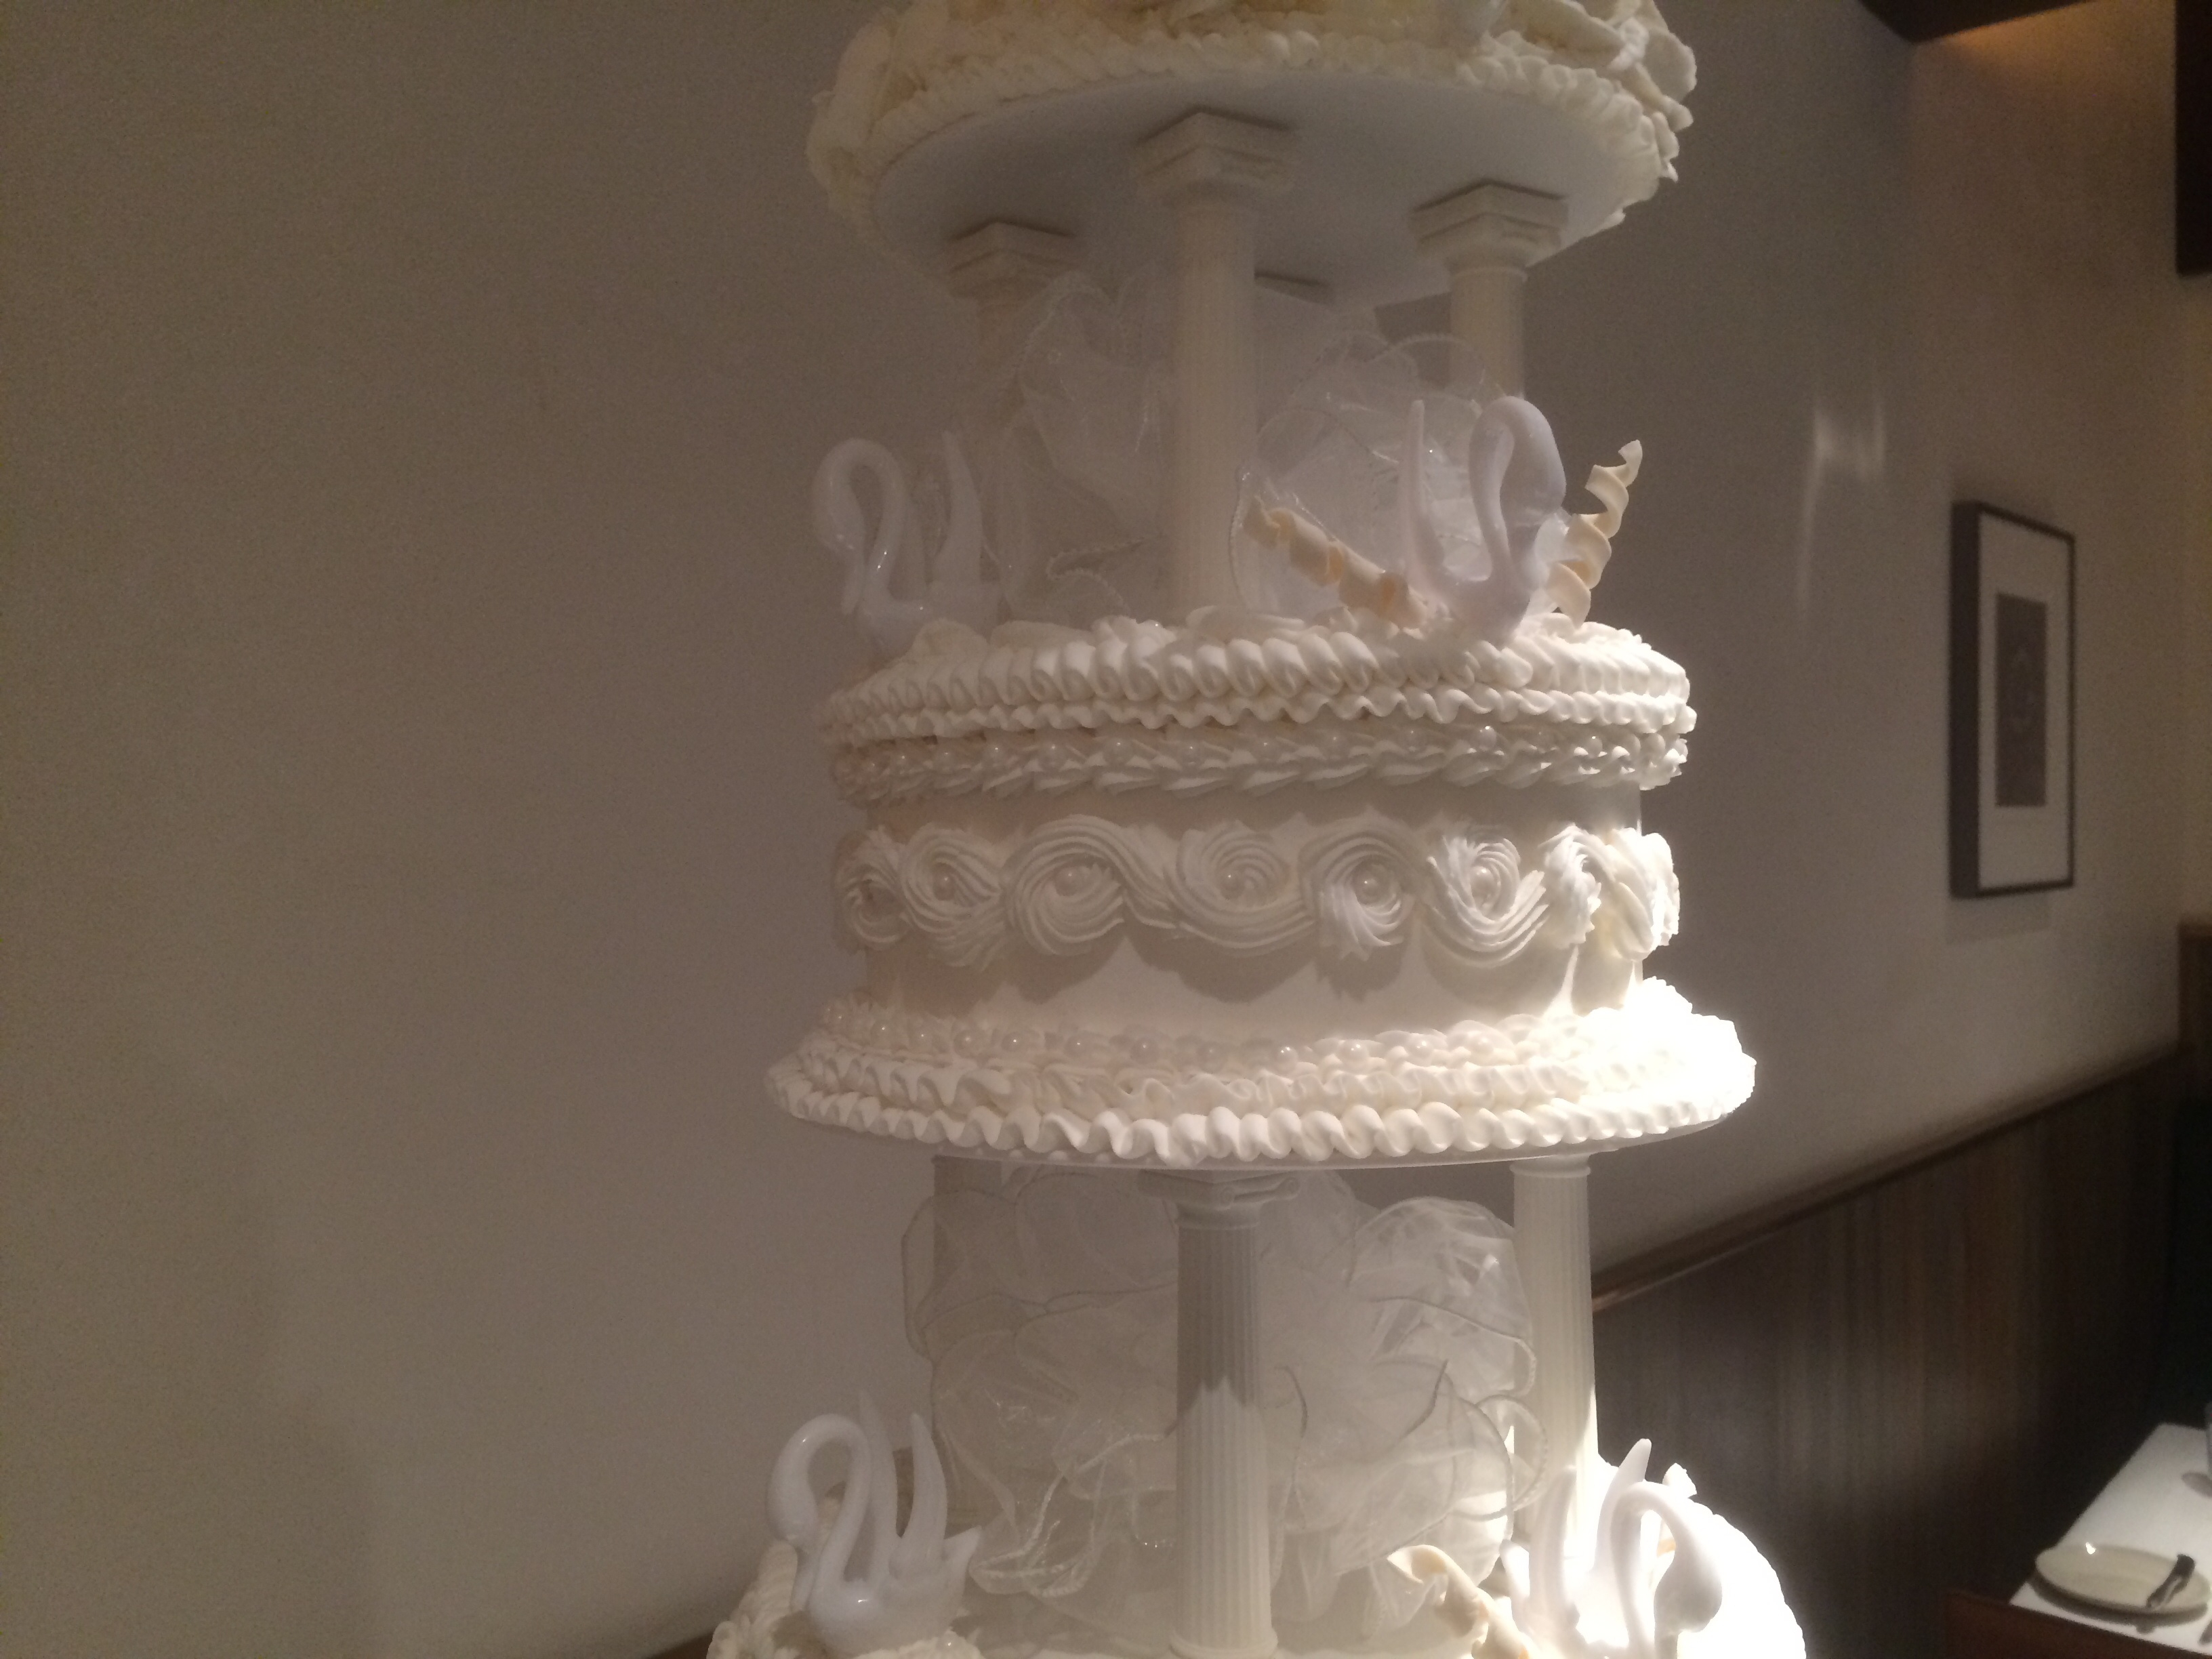 1970 s Style Tiered Wedding Cake With Pillars And Bows